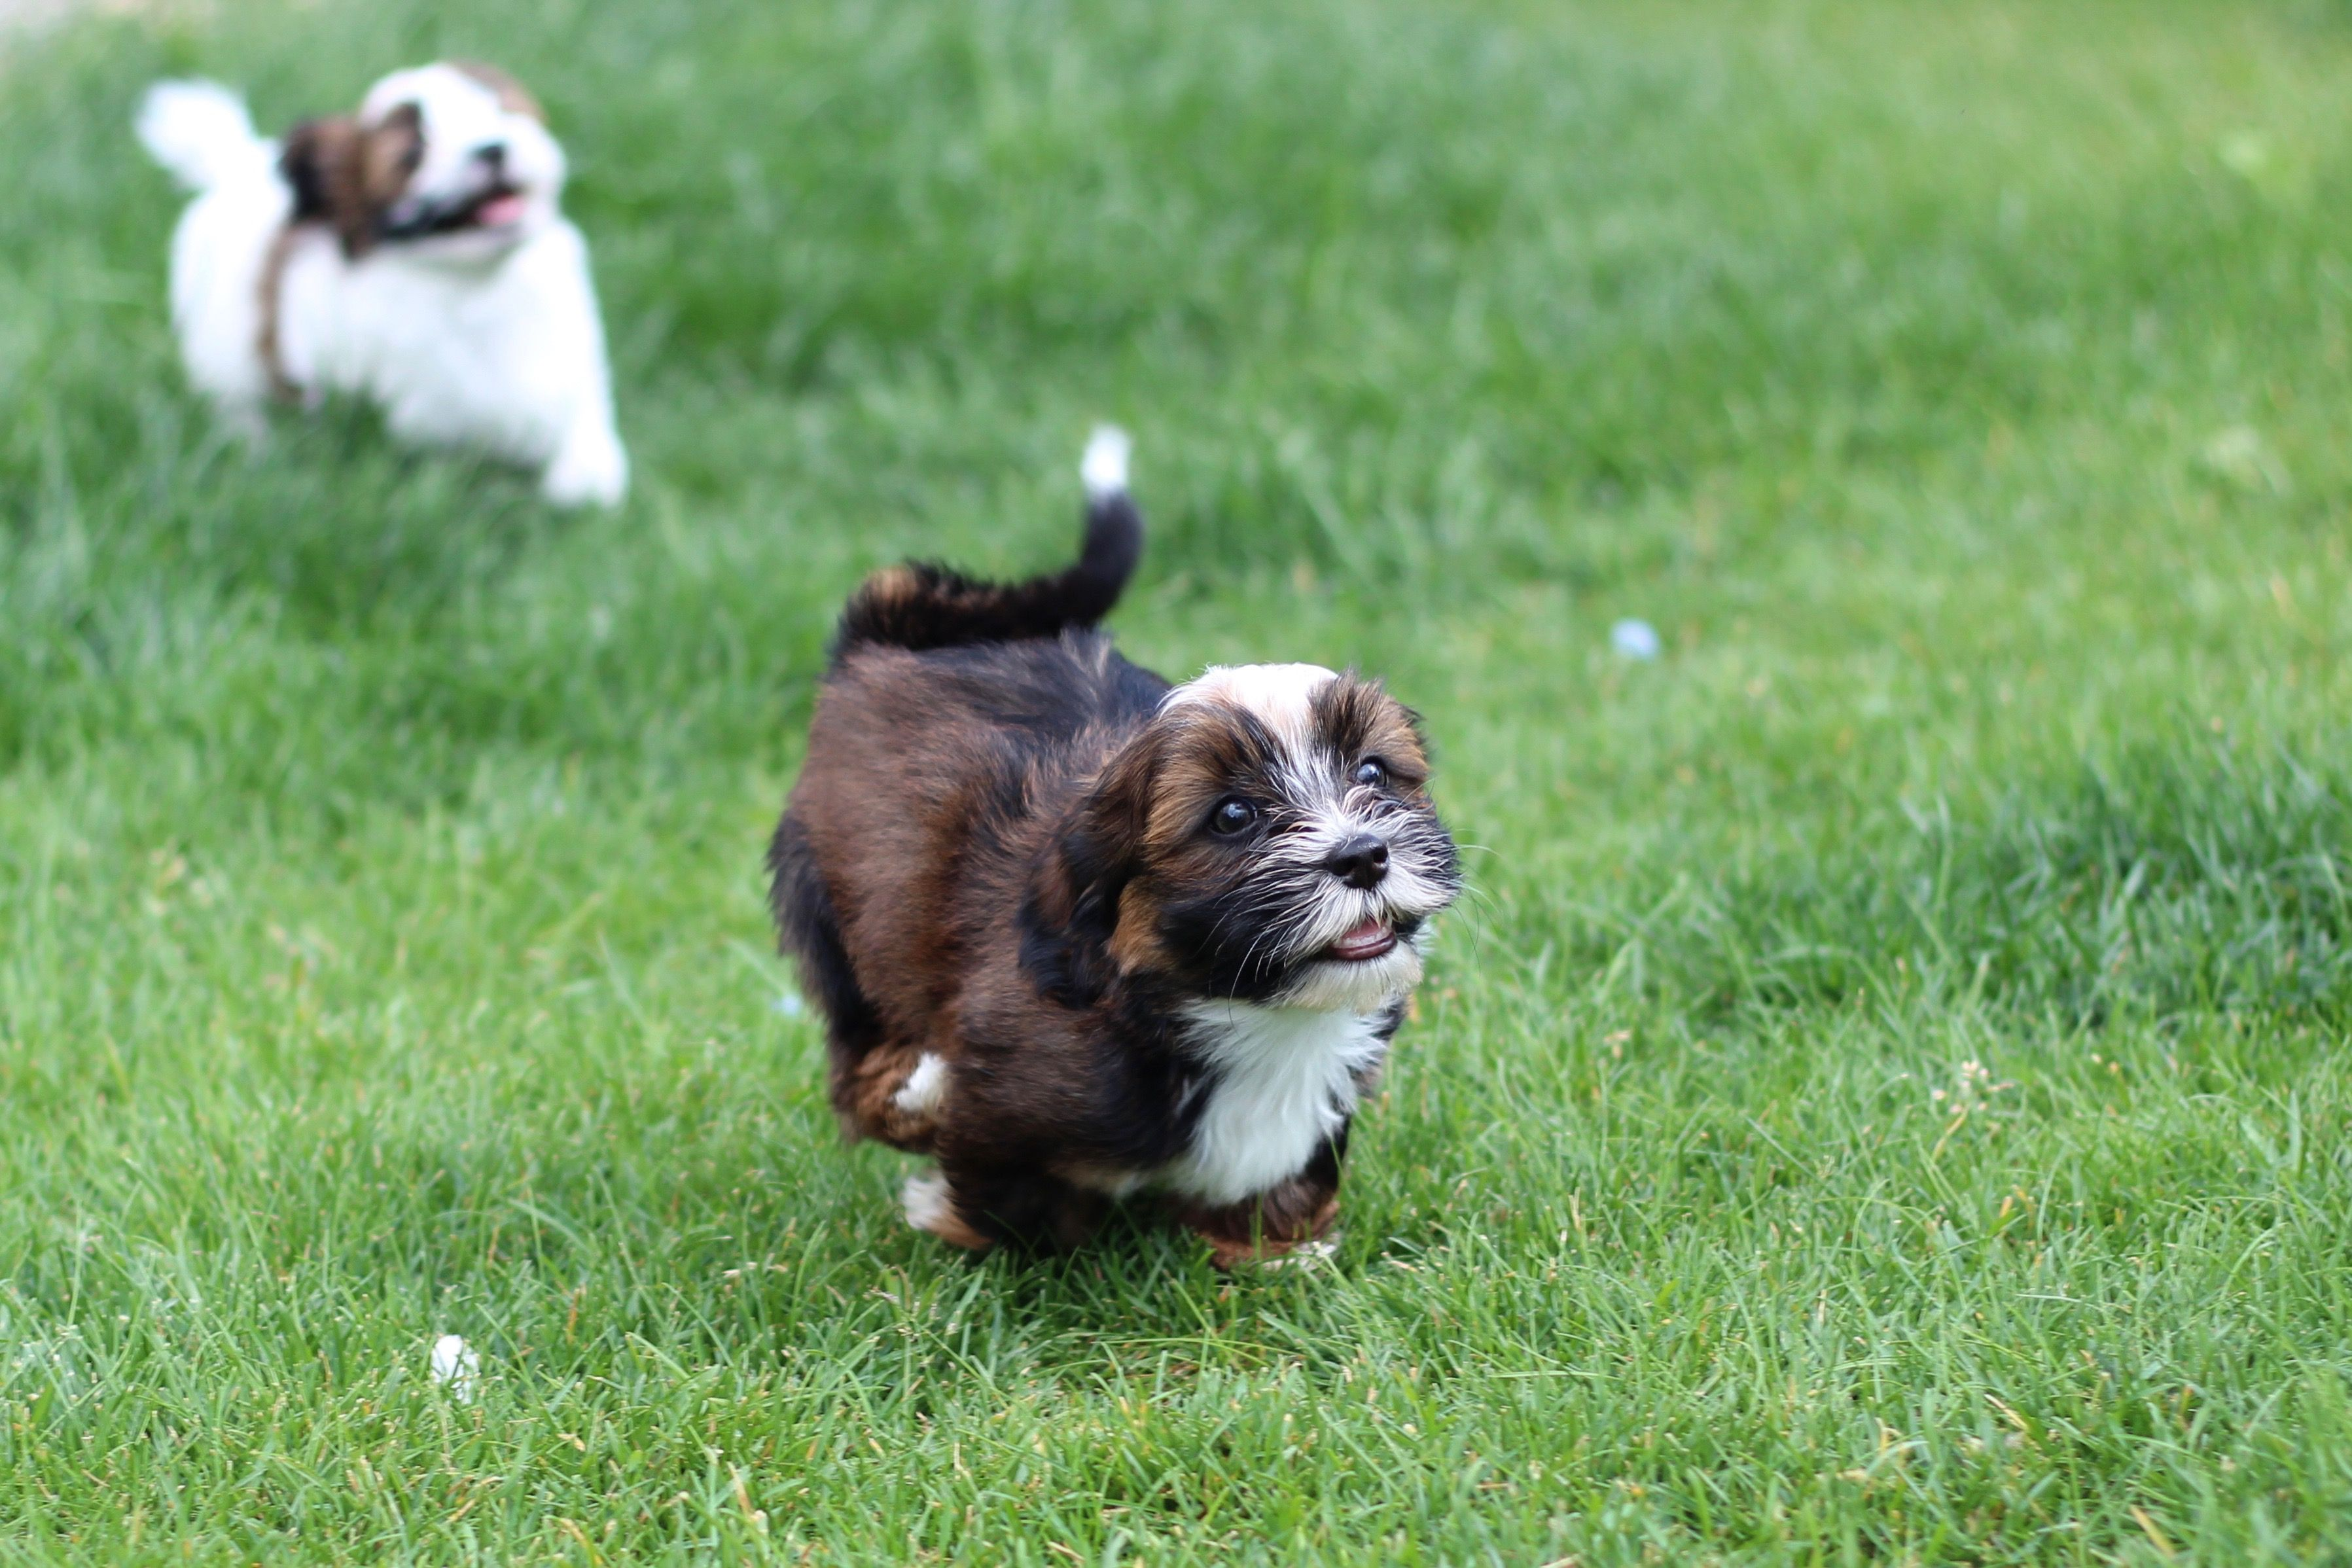 A Gorgeous Zuchon Puppy From Babybarks Ca Puppies Shih Tzu Puppy Dogs And Puppies